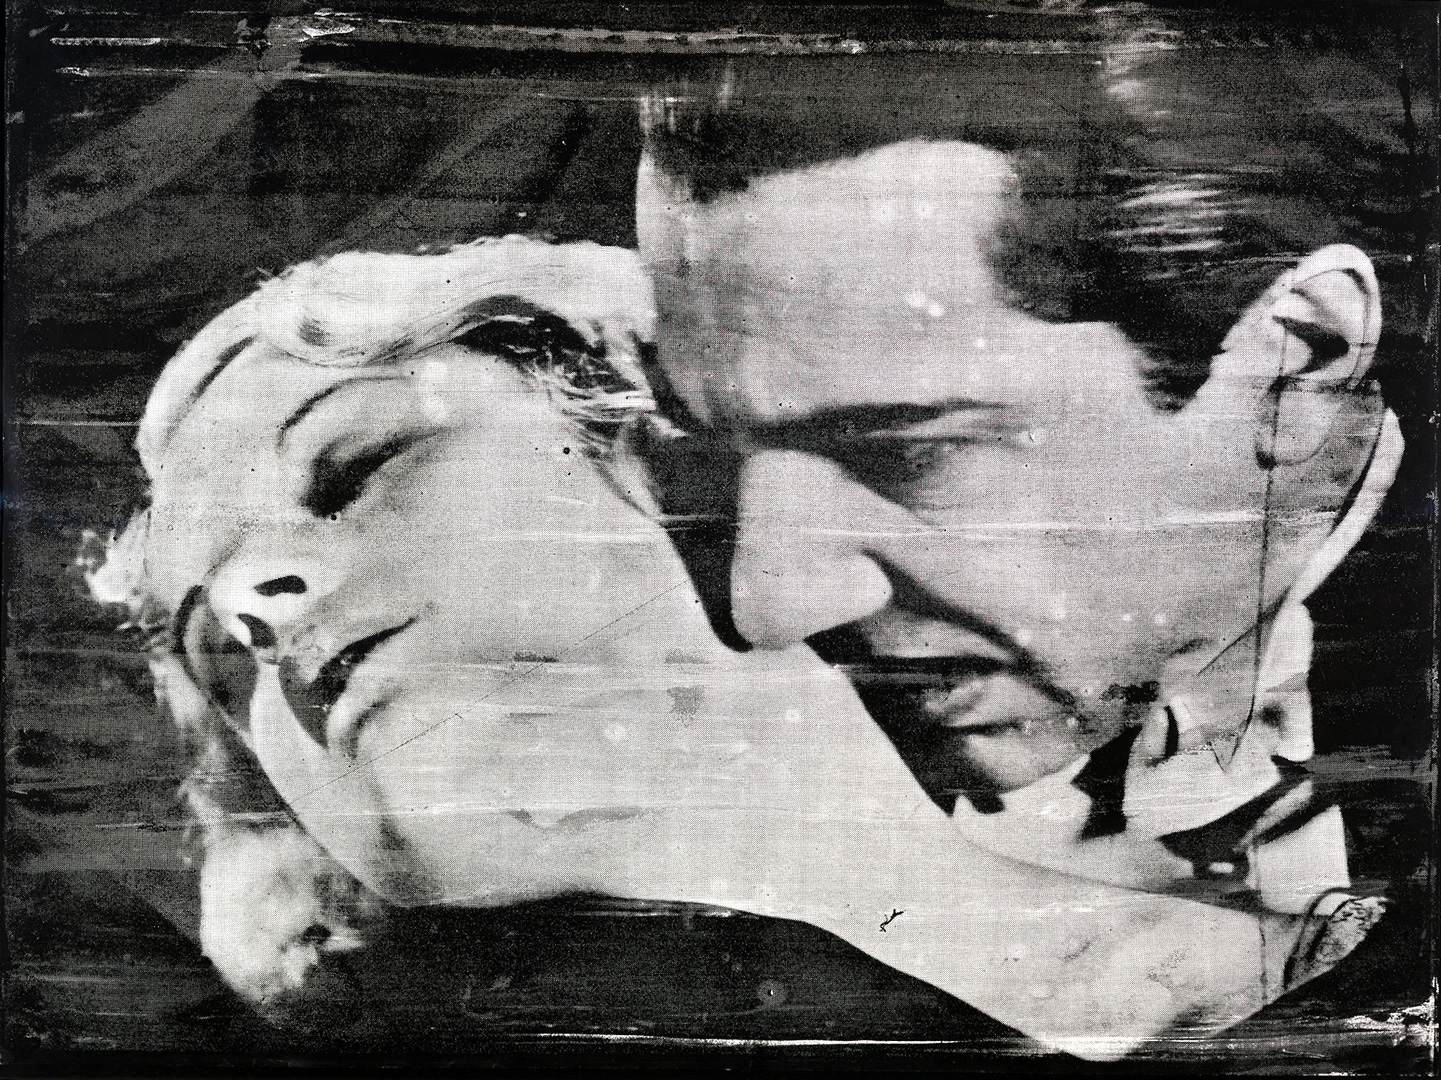 Andy Warhol - The Kiss (Bela Lugosi), 1963, screenprint on paper